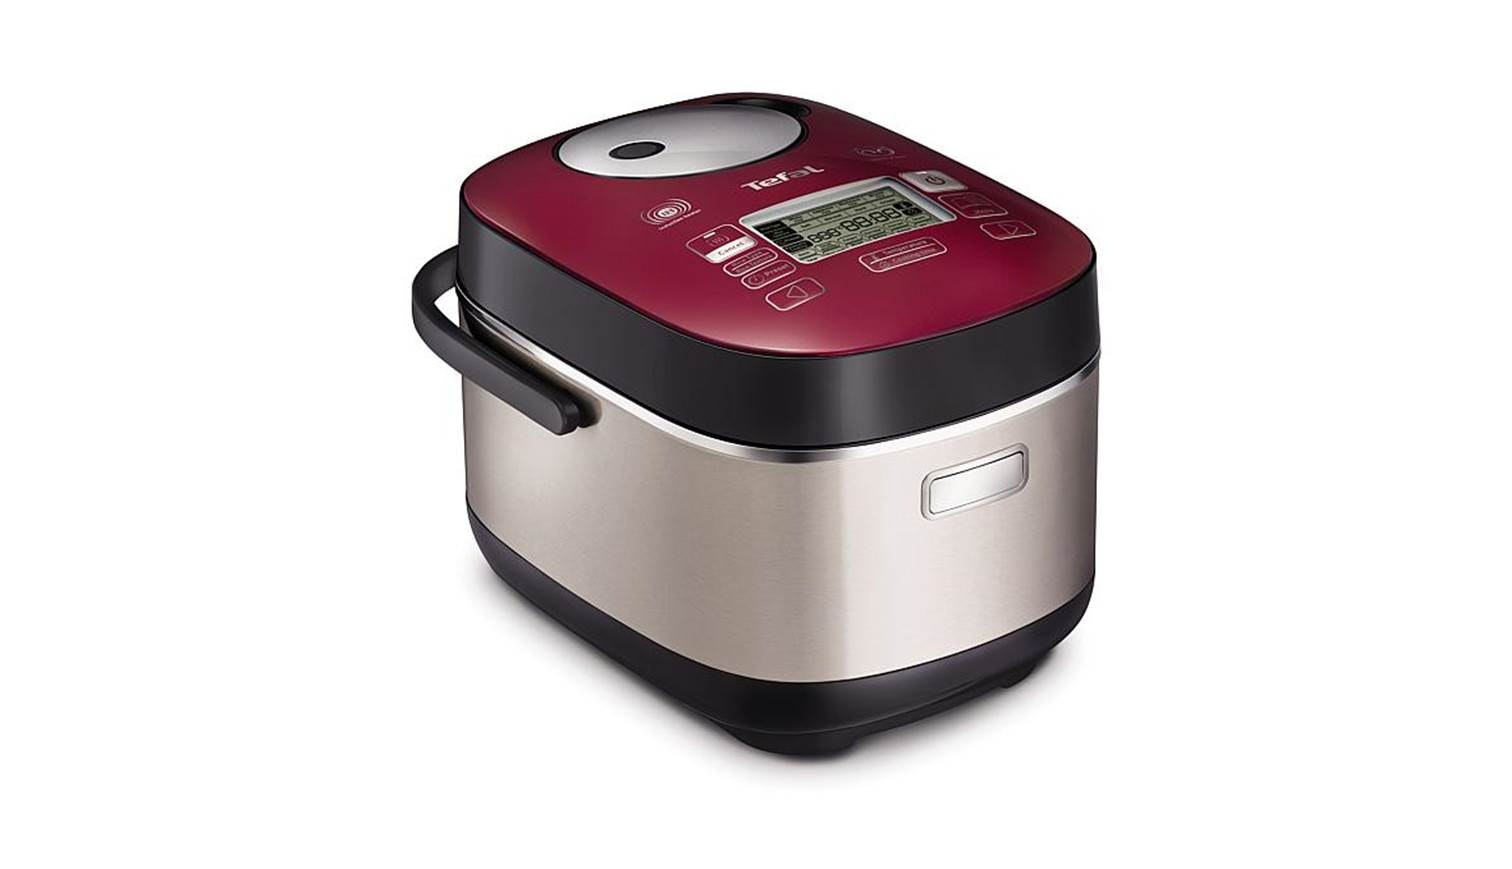 Tefal Rk 8055 Rice Cooker 1 8l Harvey Norman Singapore